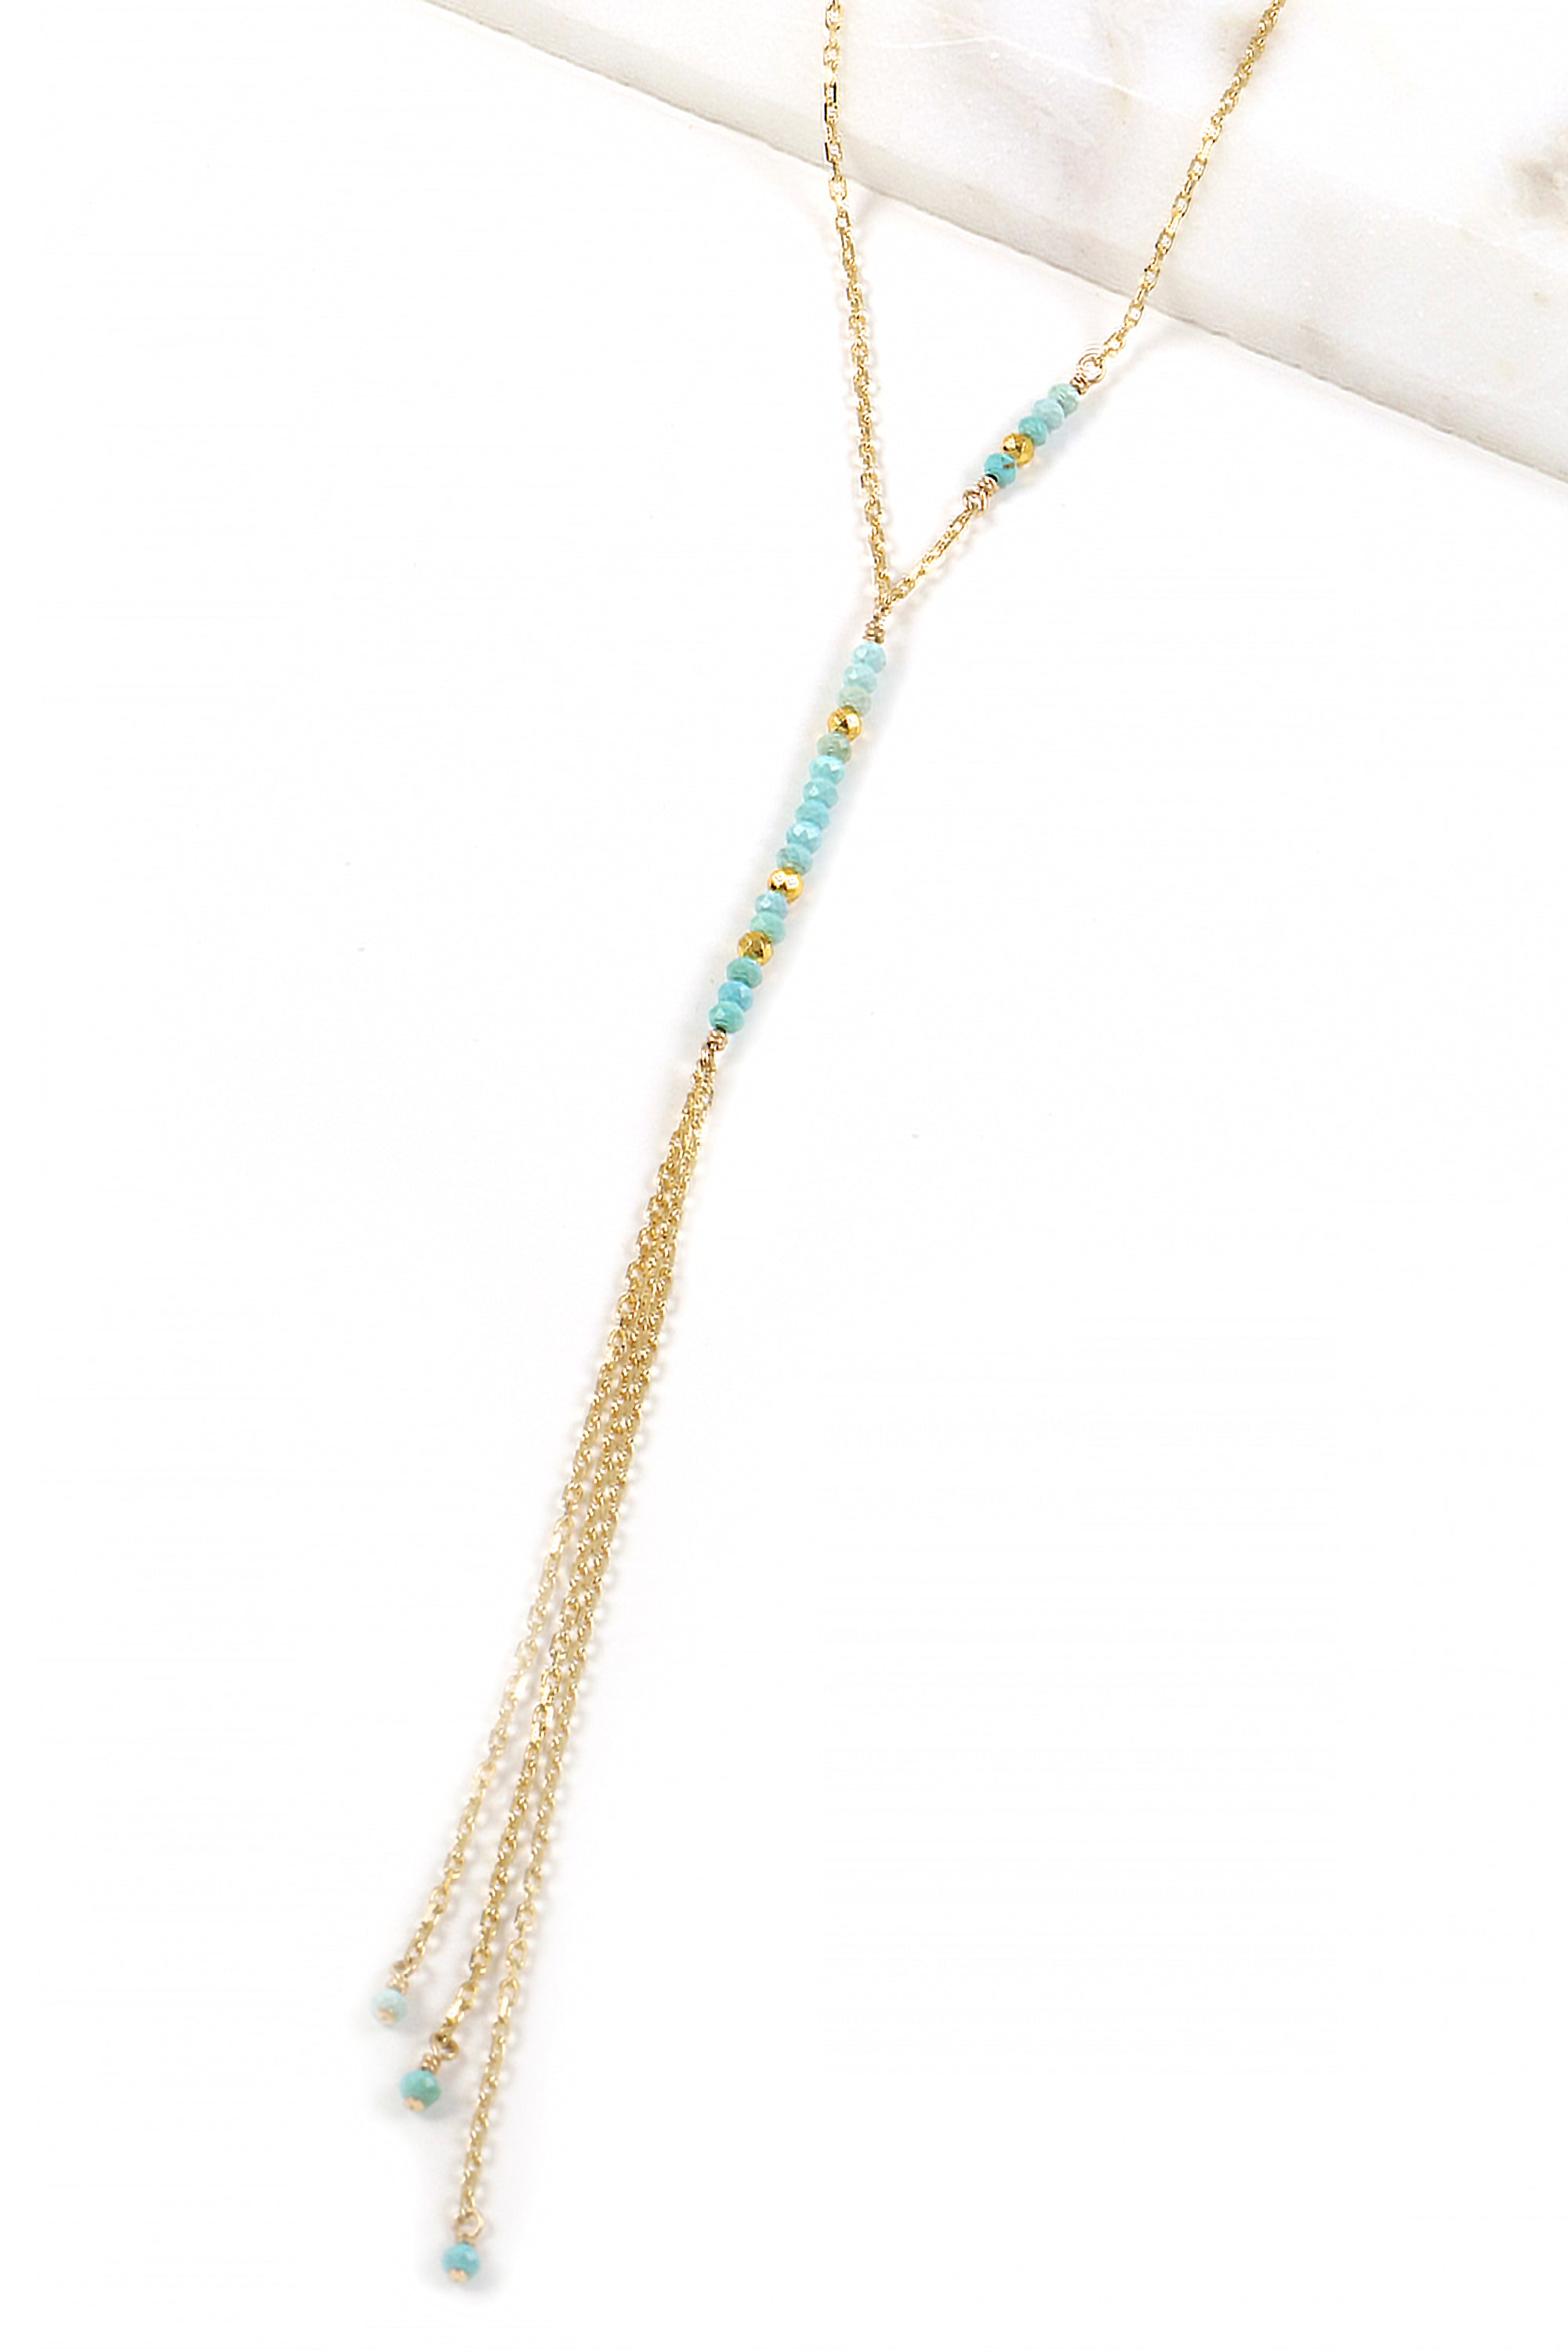 Turquoise Waterfall Necklace